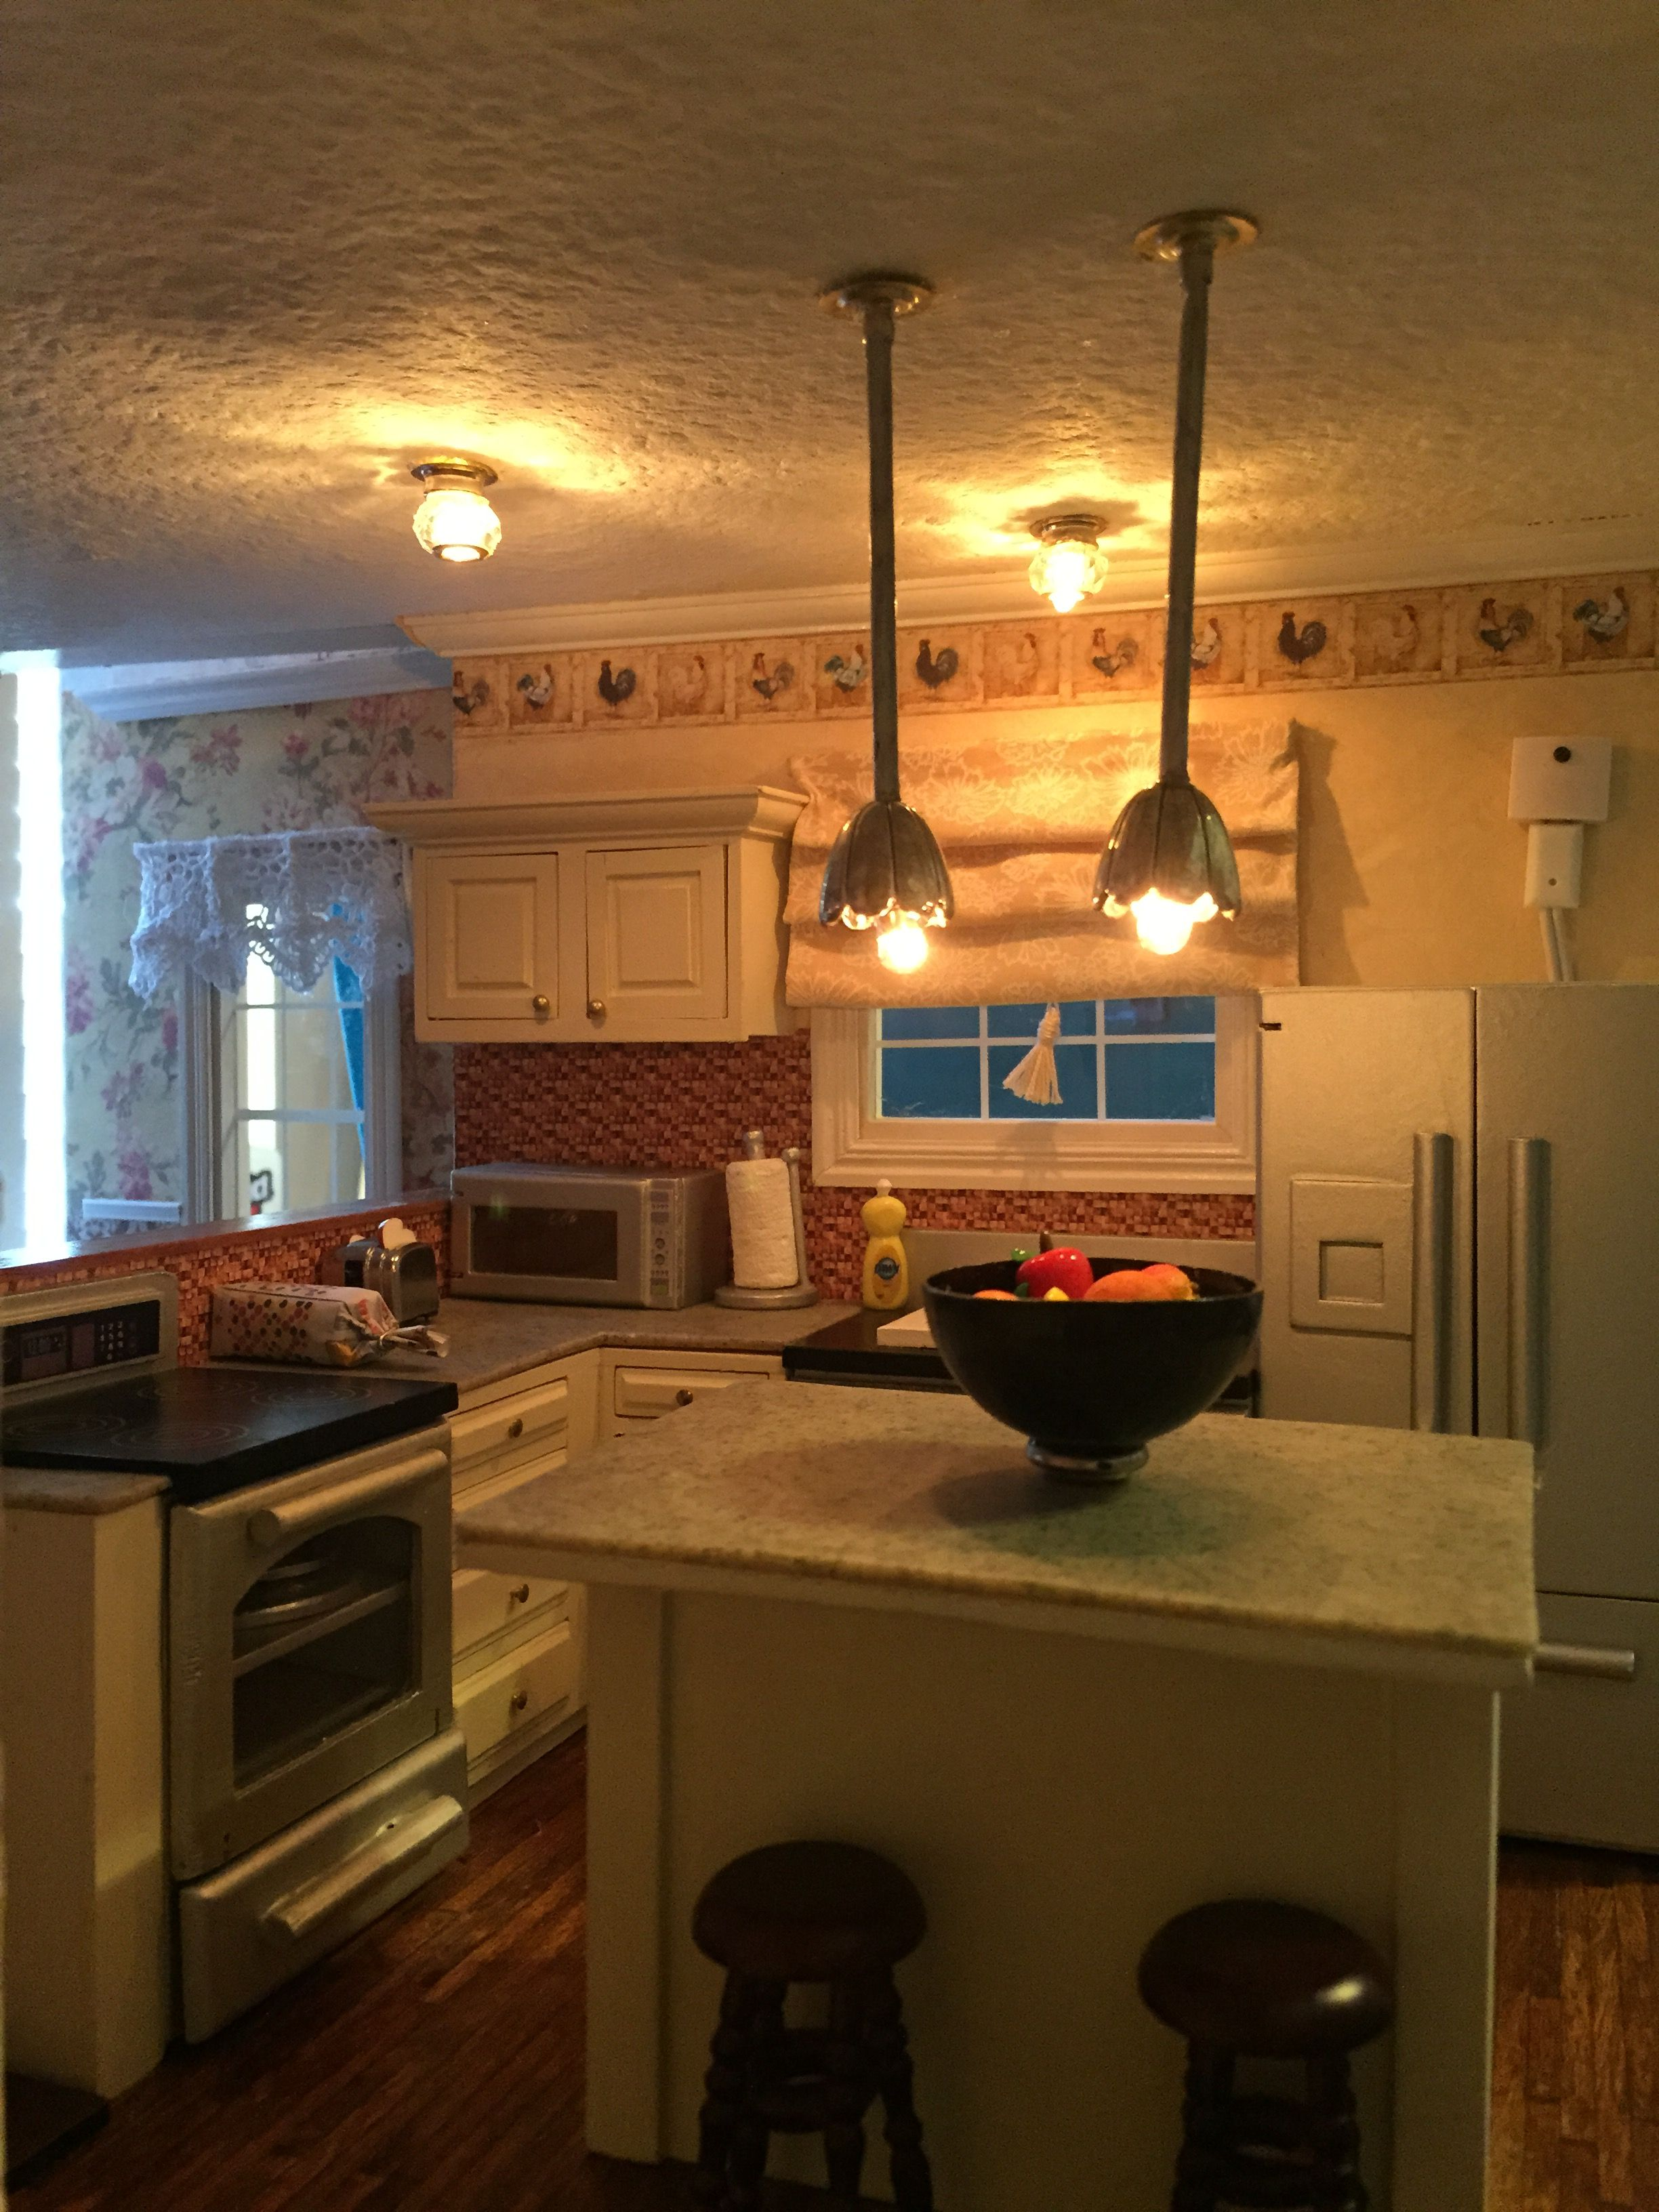 Kitchen wallpaper border  Kitchen Granite counter top is FEMO rolled out cut to fit u baked